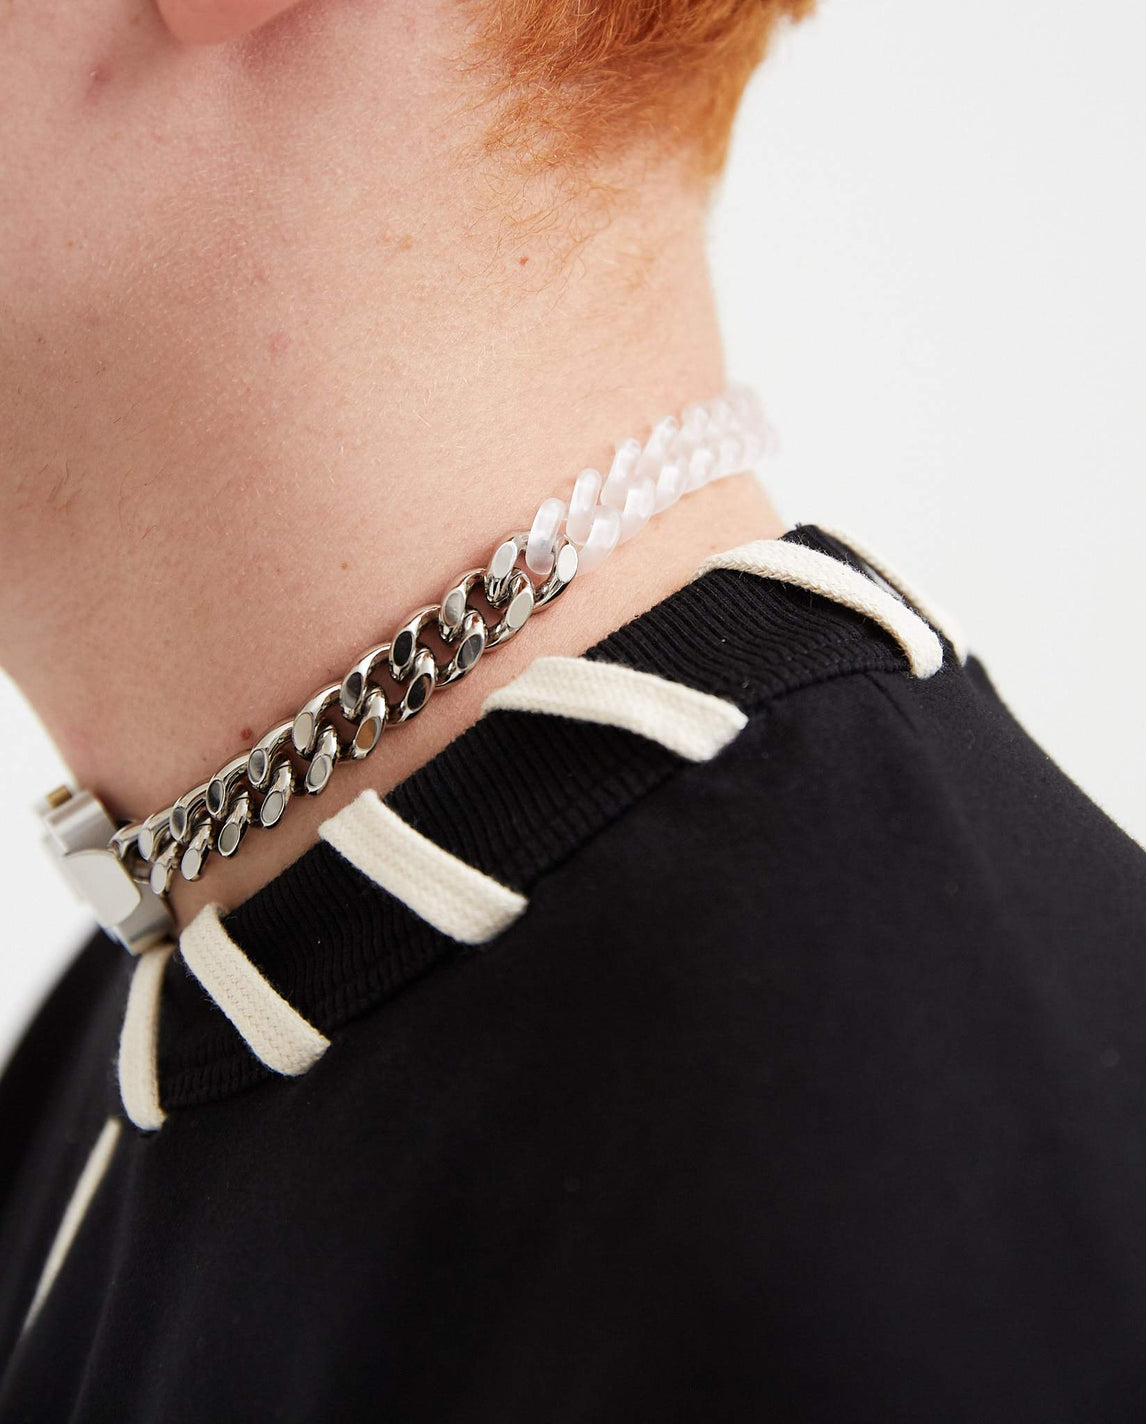 Metal and Nylon Chain Necklace - Silver UNISEX 1017 ALYX 9SM